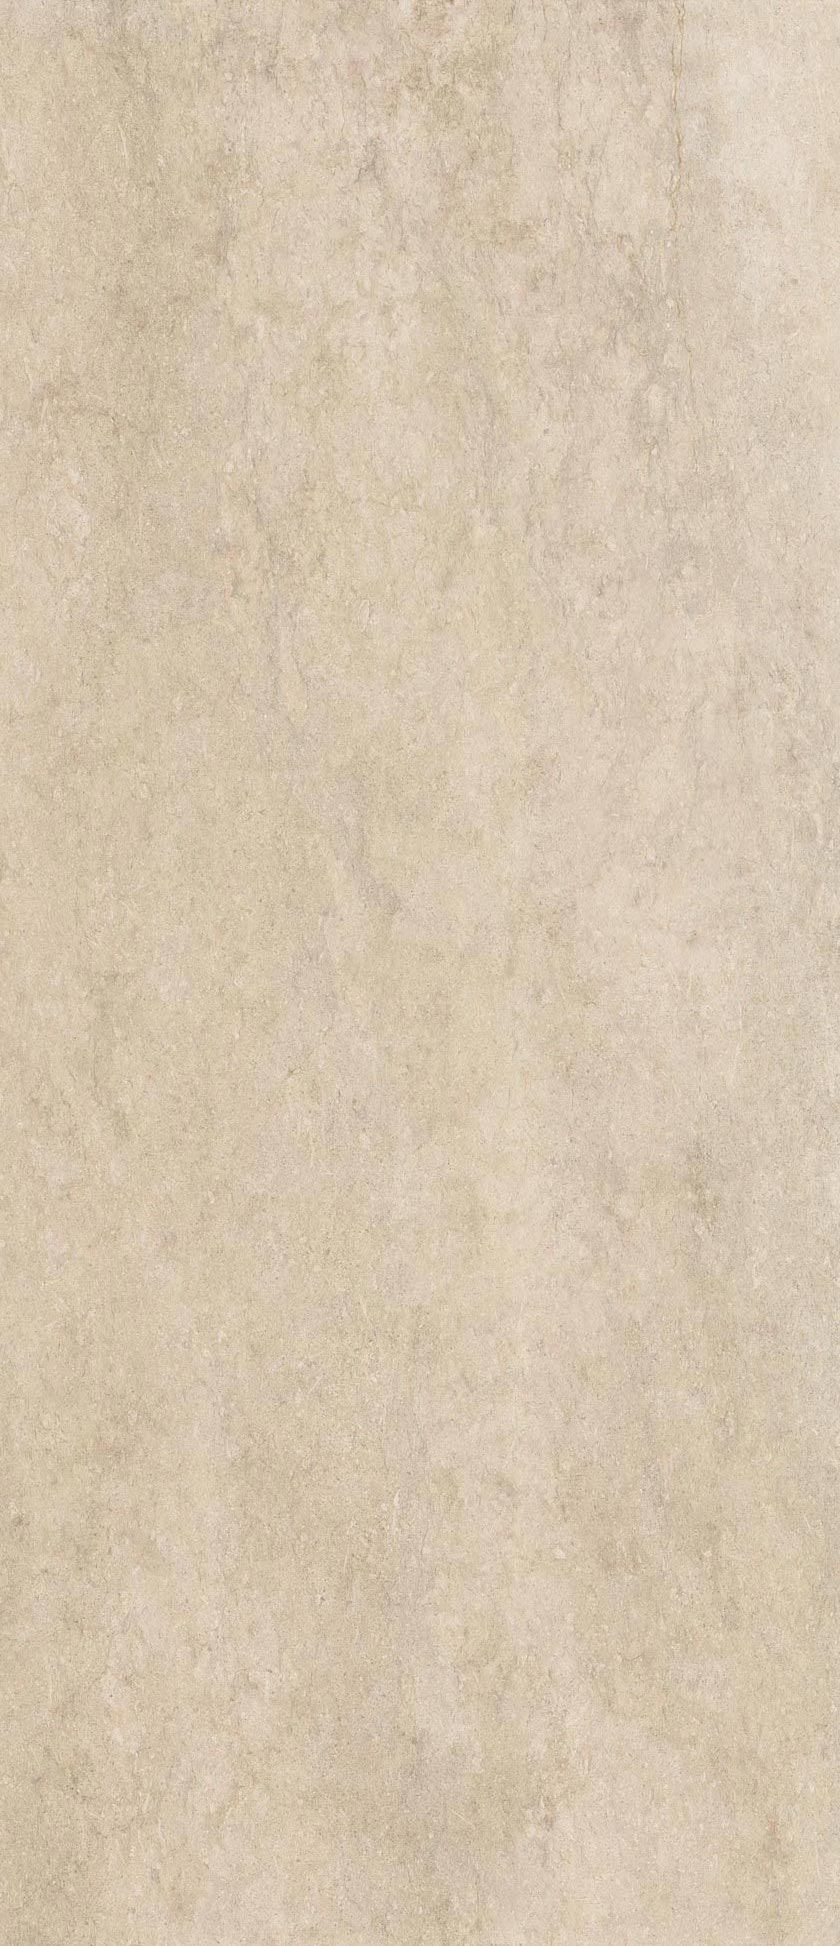 atlas-plan-grande-superficie-in-gres-porcellanato-lims-beige